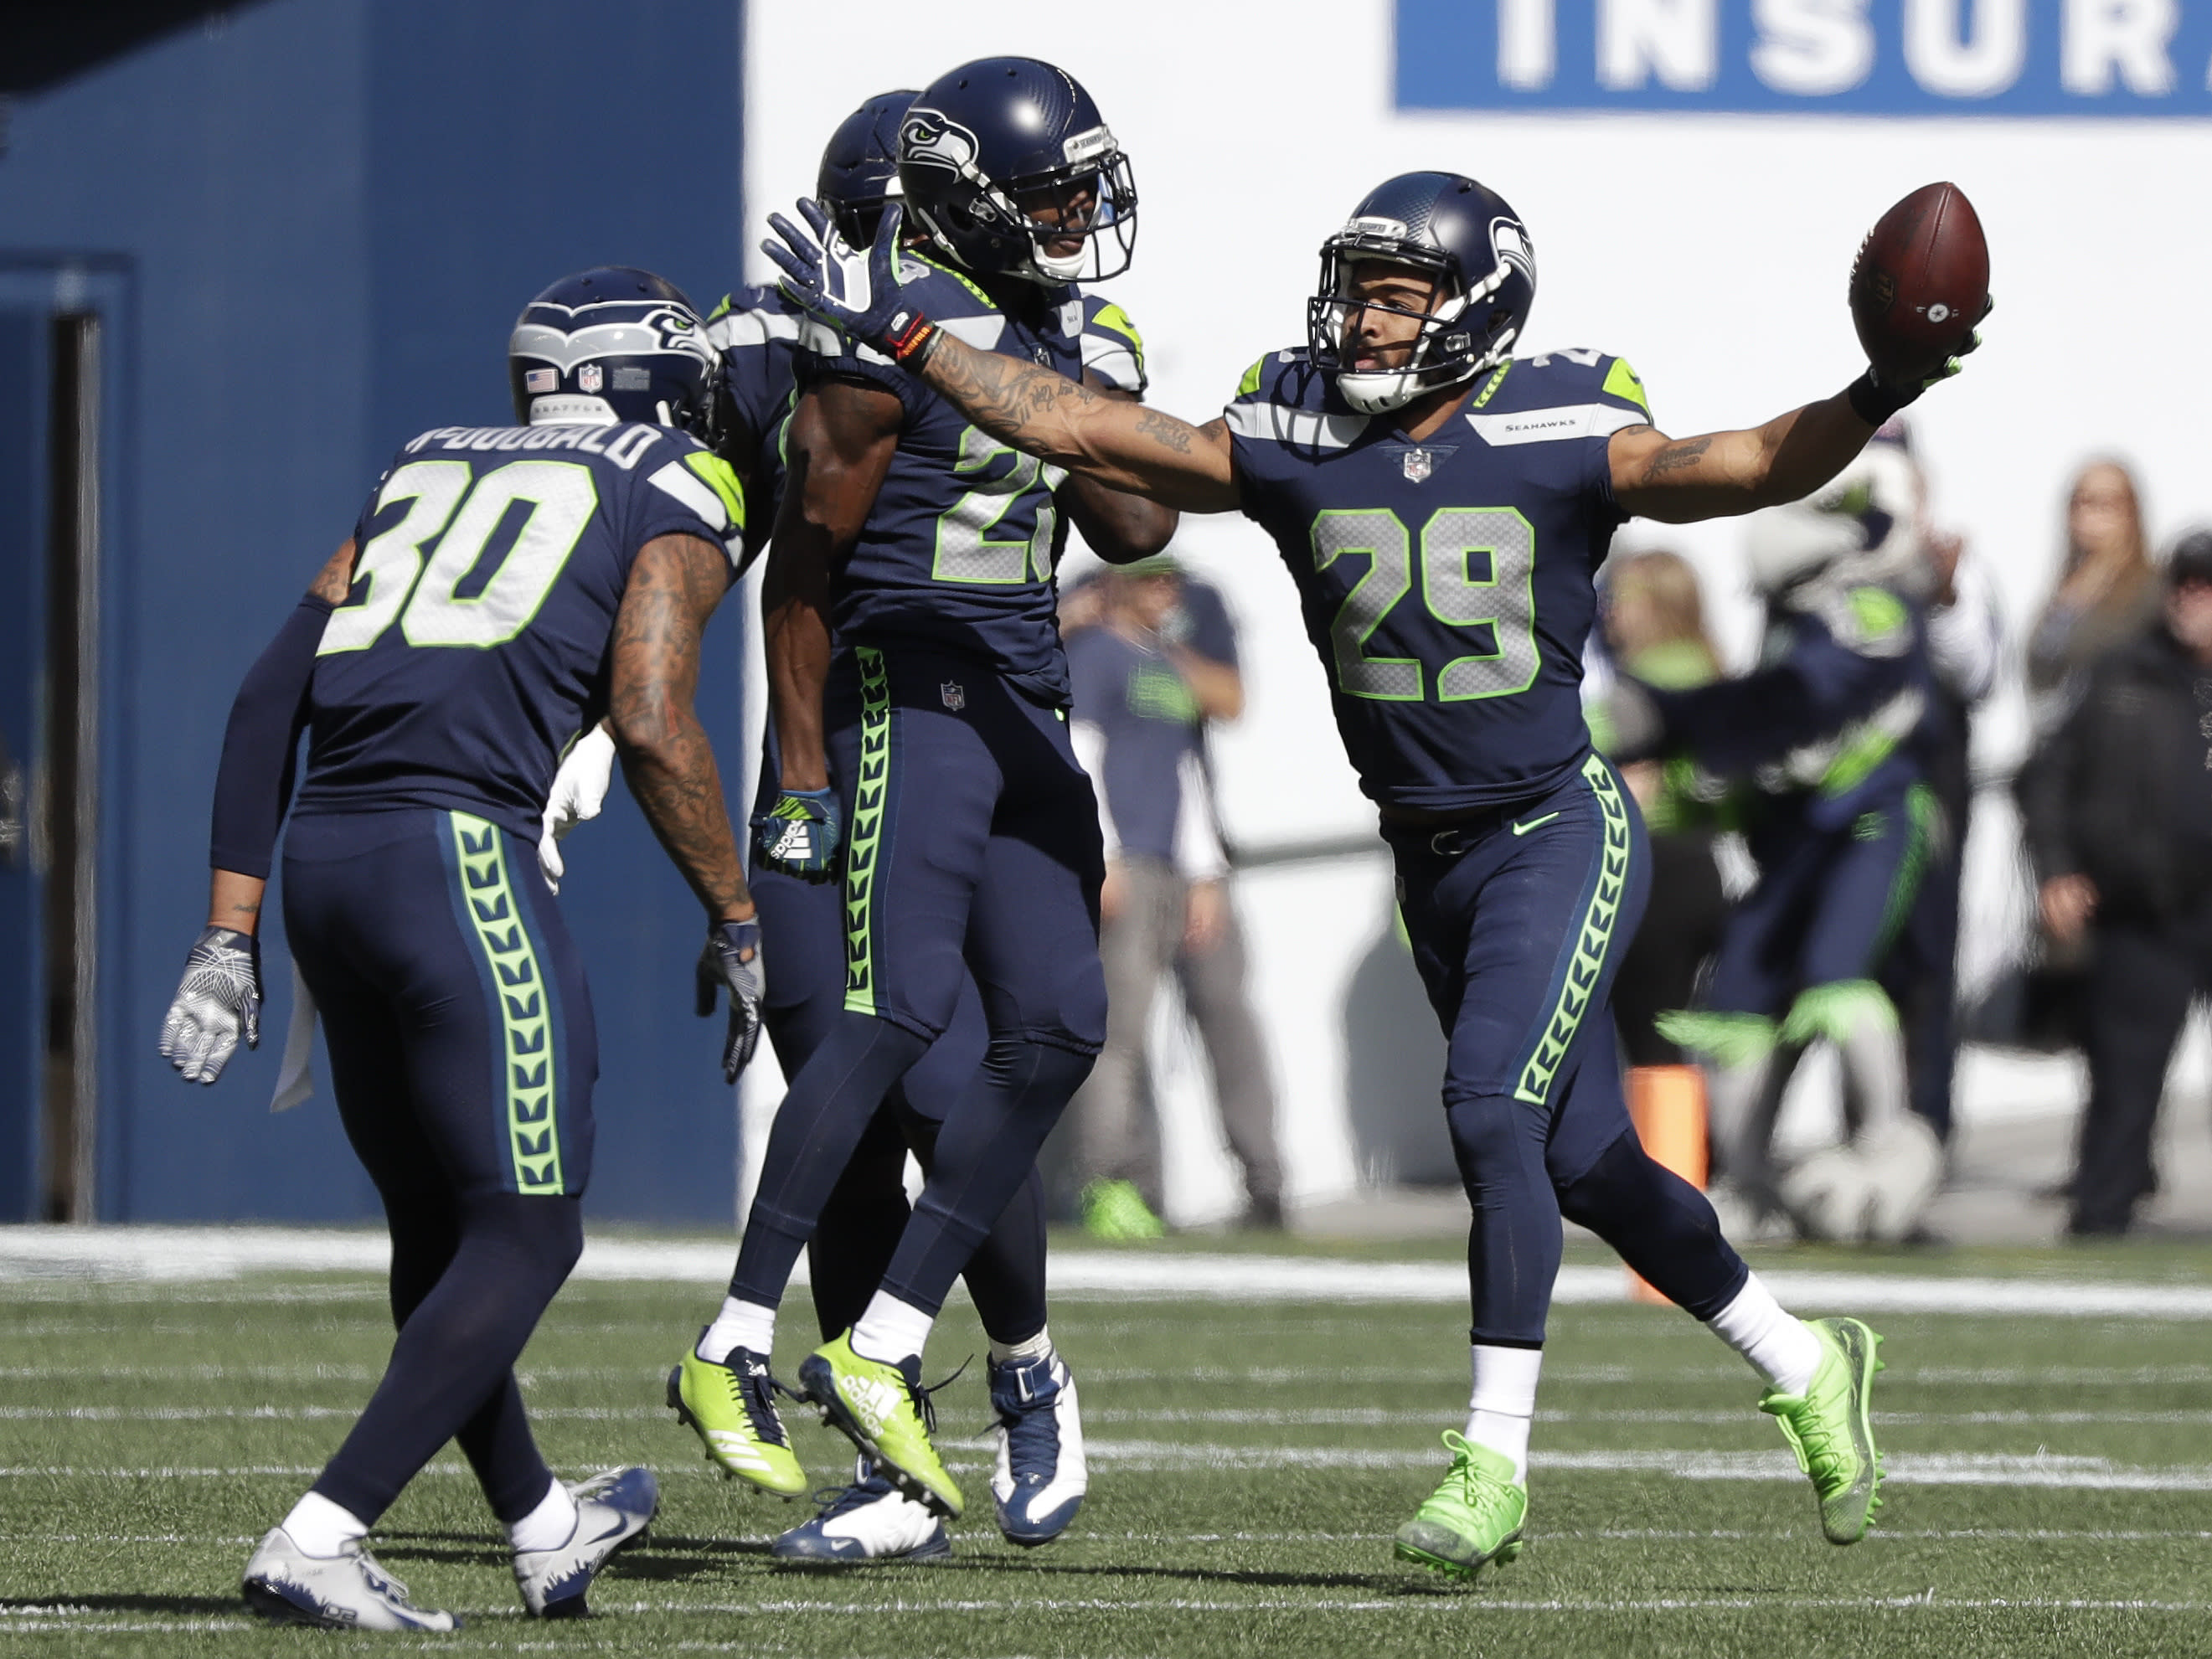 Seattle Seahawks free safety Earl Thomas (29) celebrates after he intercepted a pass during the first half of an NFL football game against the Dallas Cowboys, Sunday, Sept. 23, 2018, in Seattle. (AP Photo/Elaine Thompson)